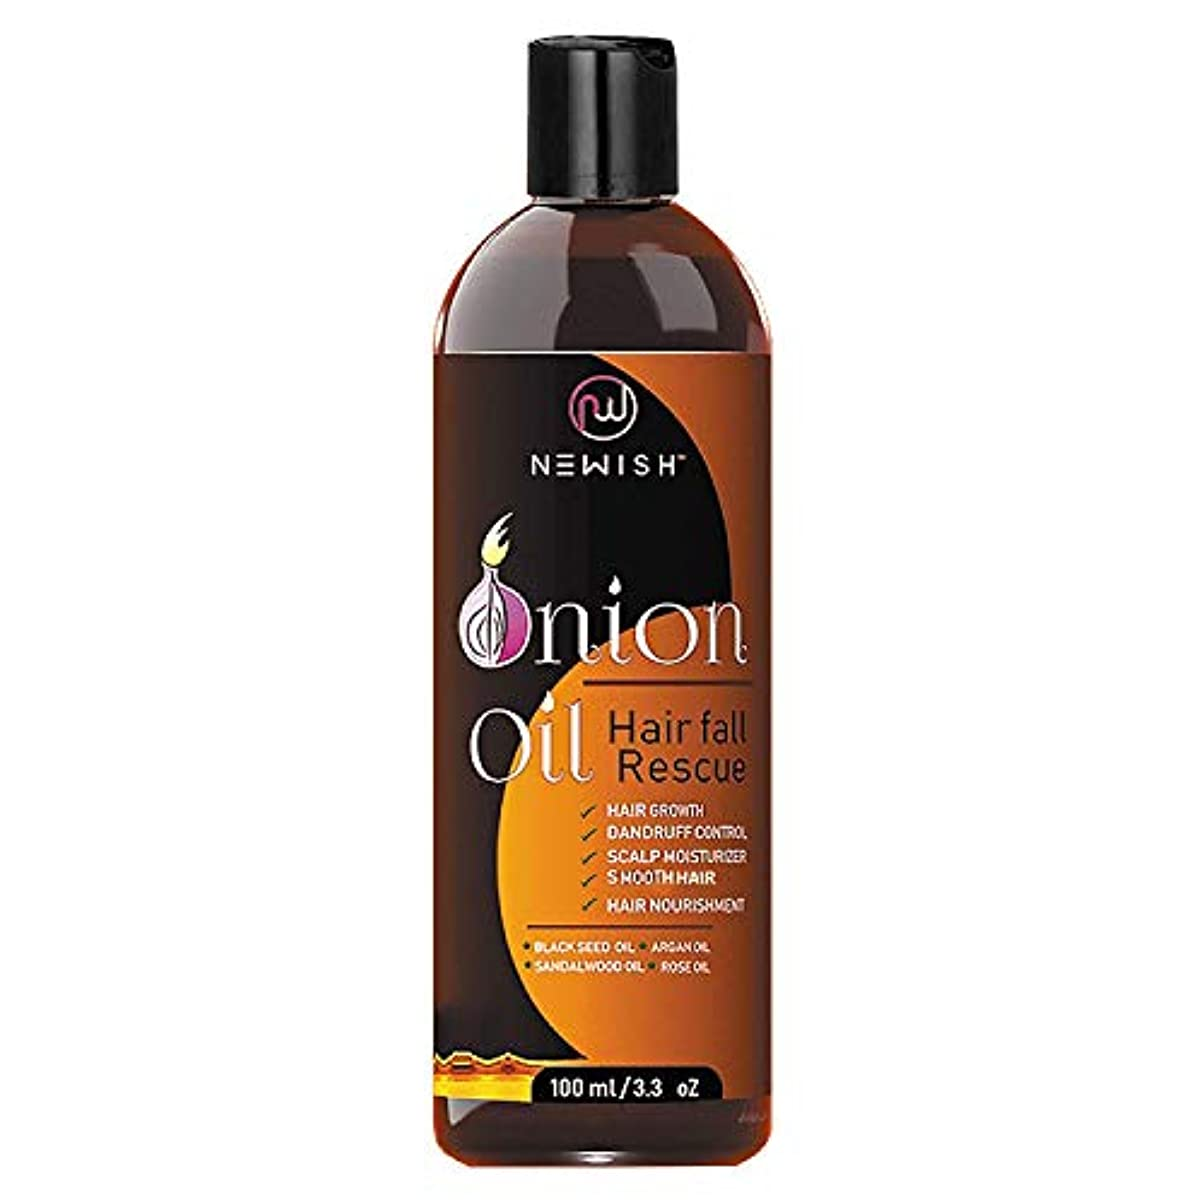 Newish Red Onion Oil for Hair Regrowth Men and Women, 200ml